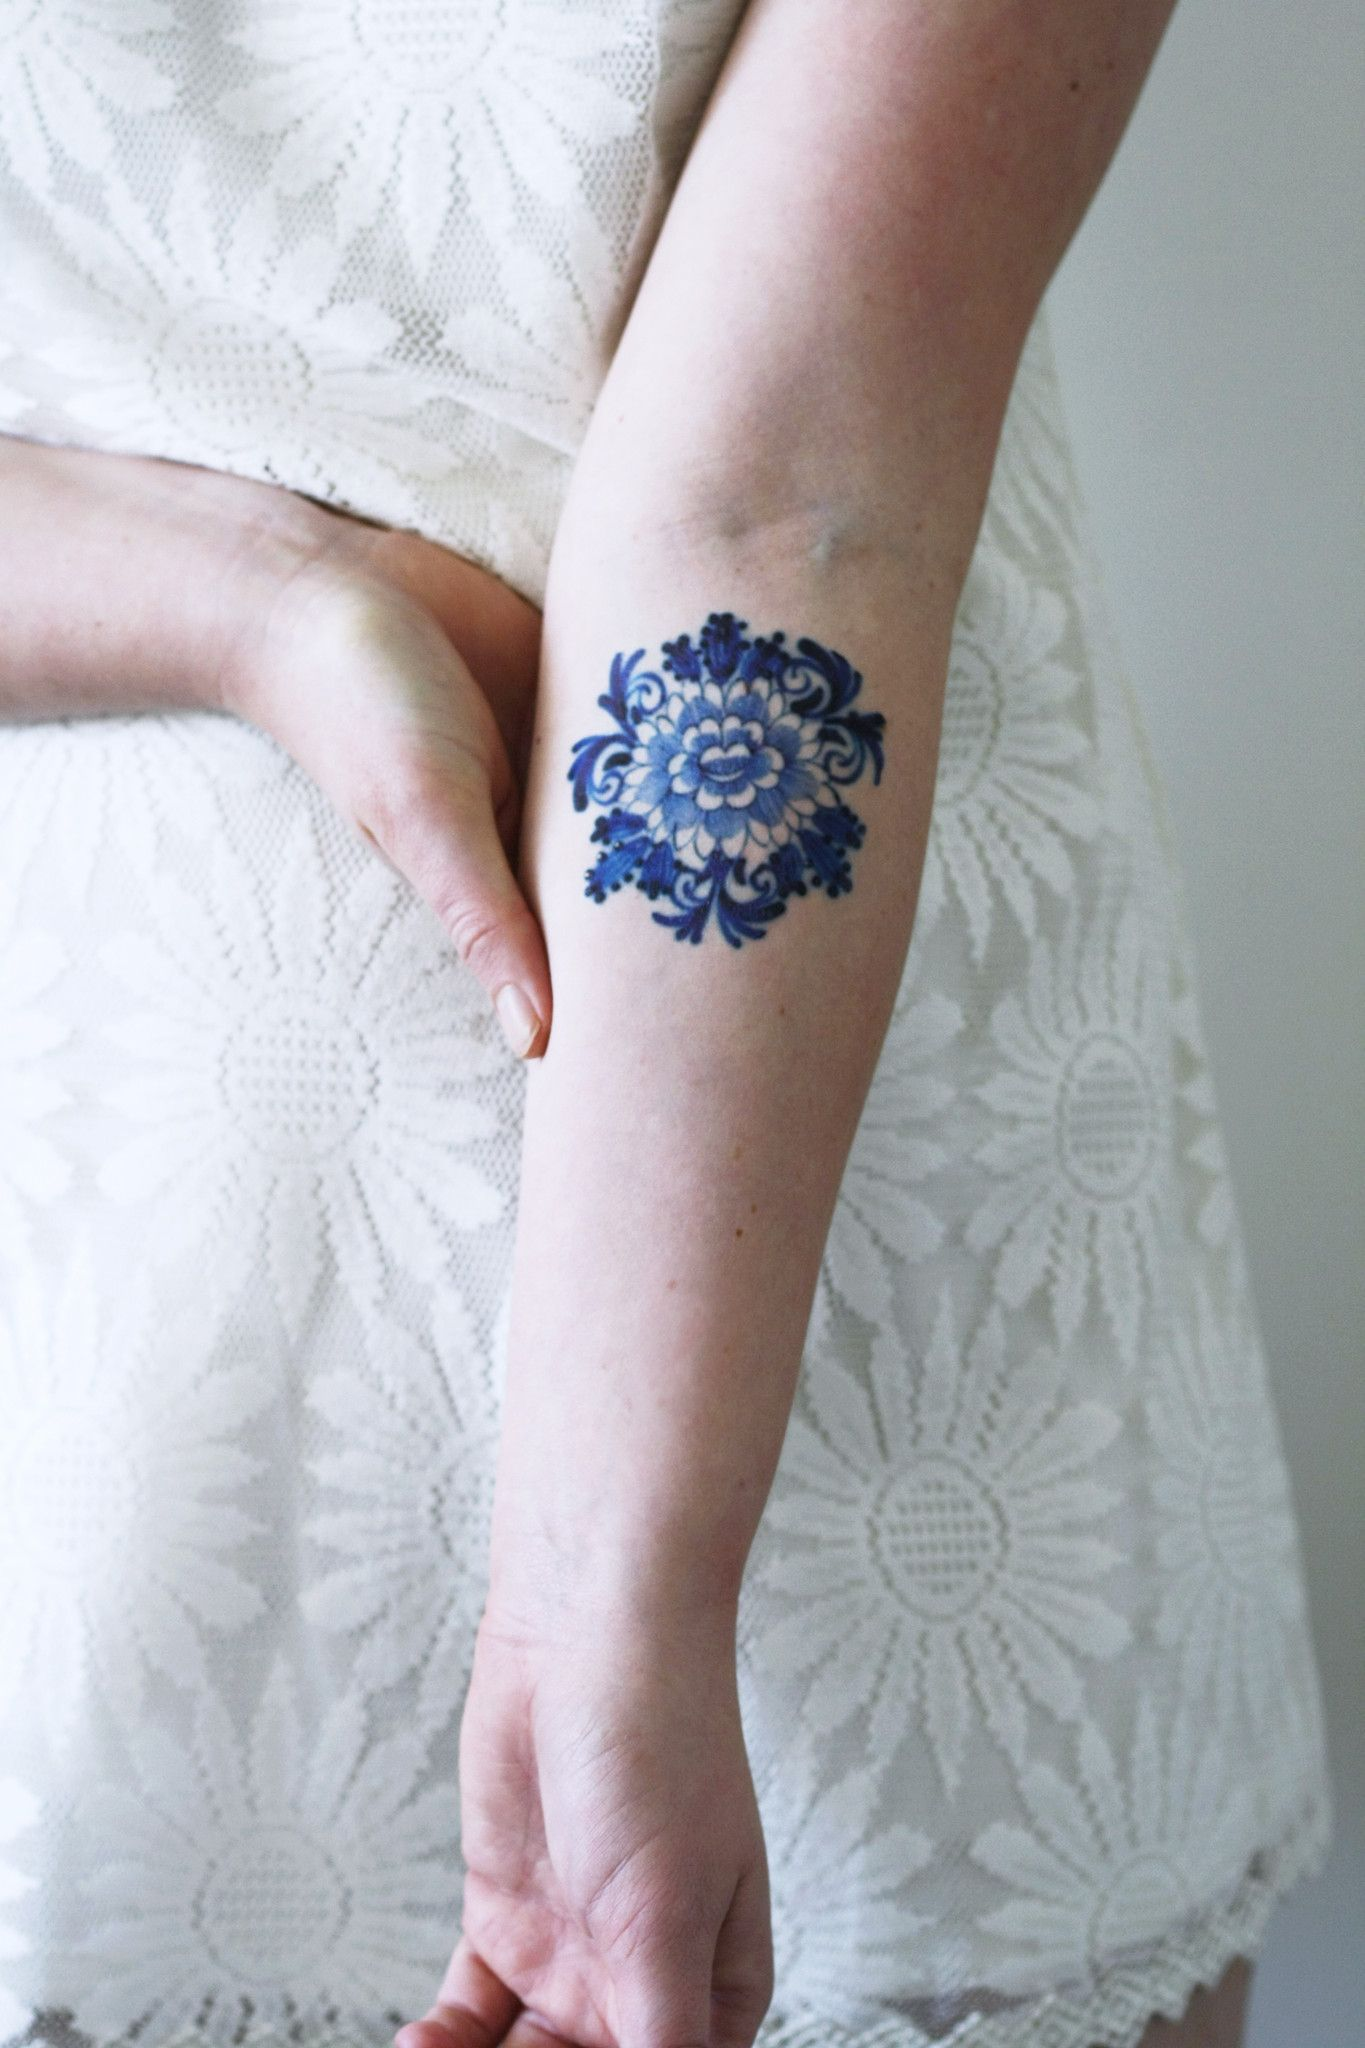 Blue Flower Tattoo Designs: Delfts Blue Round Flower Tattoo